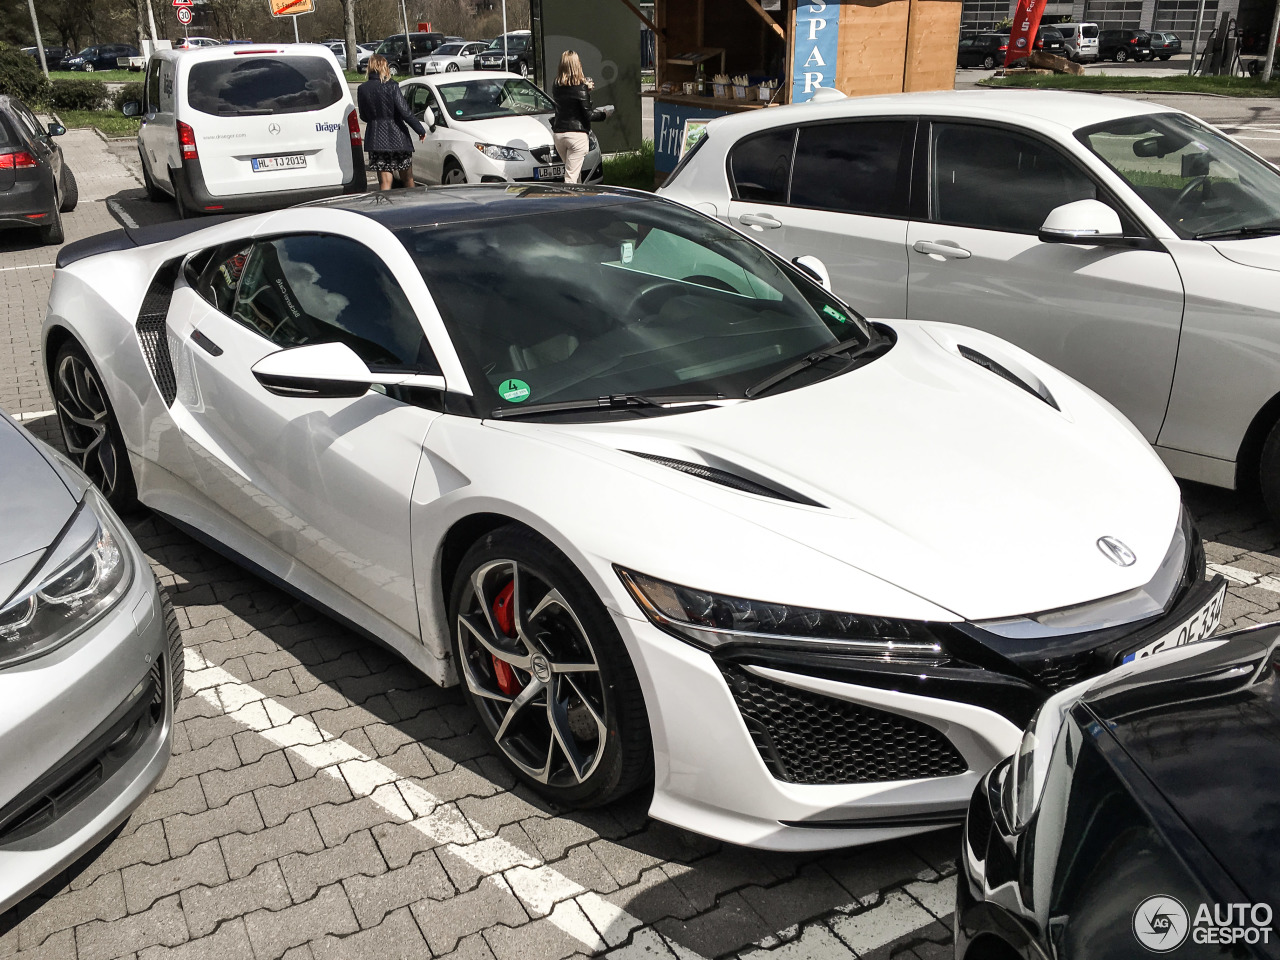 Price Of Acura Nsx >> Acura NSX 2016 - 6 April 2016 - Autogespot